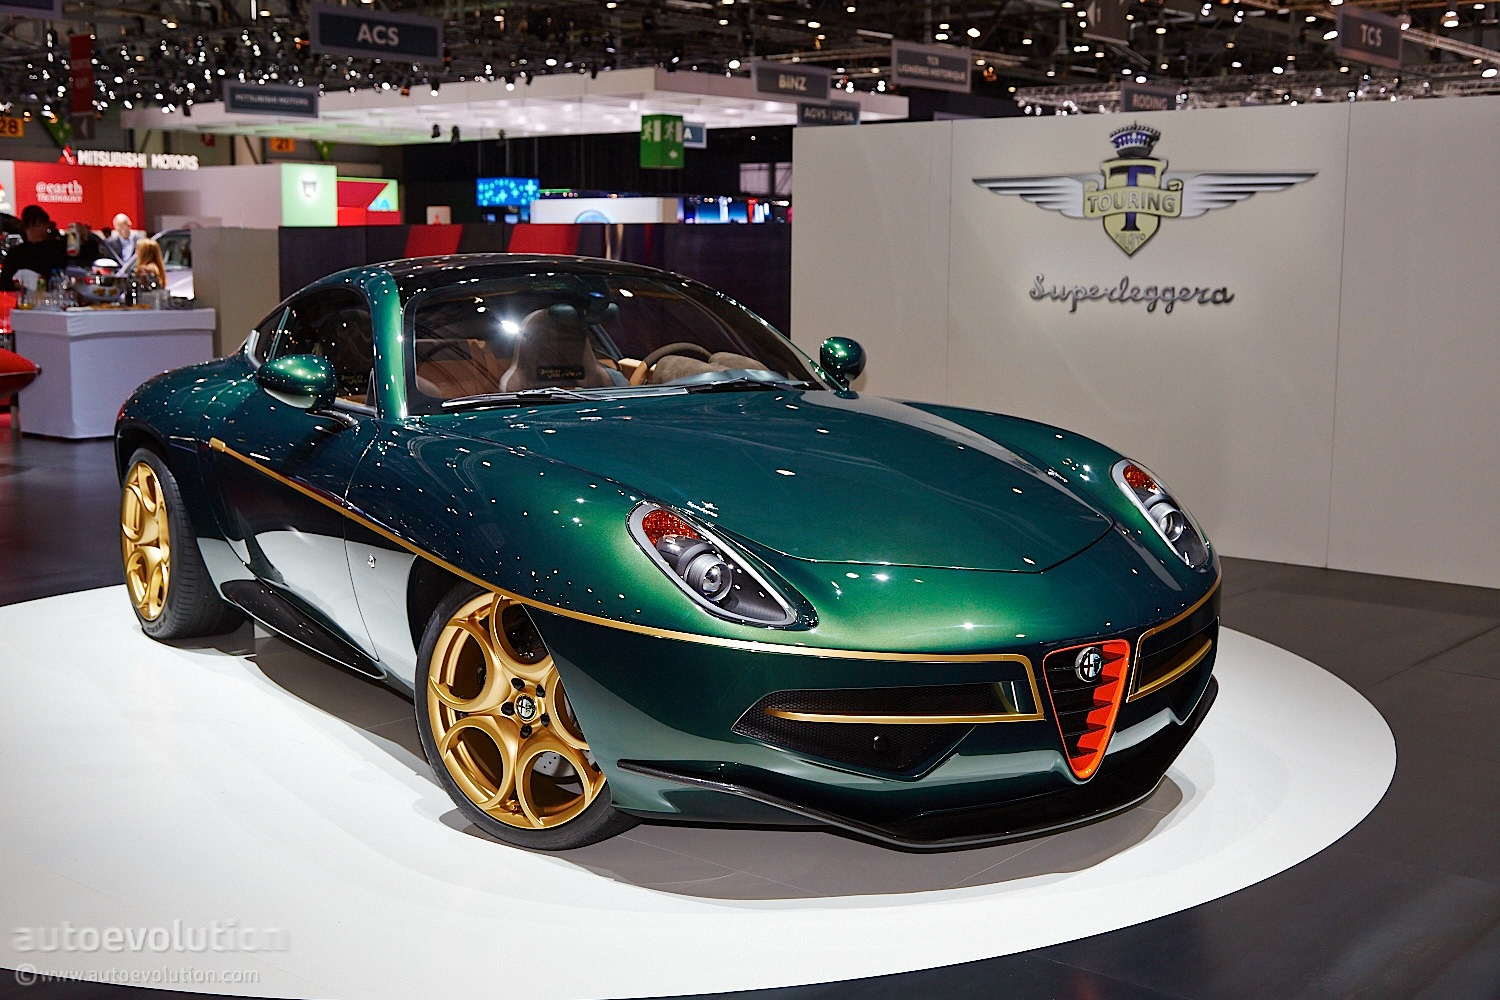 Touring S Disco Volante Looks Minty Fresh In Green And Gold Live Photos